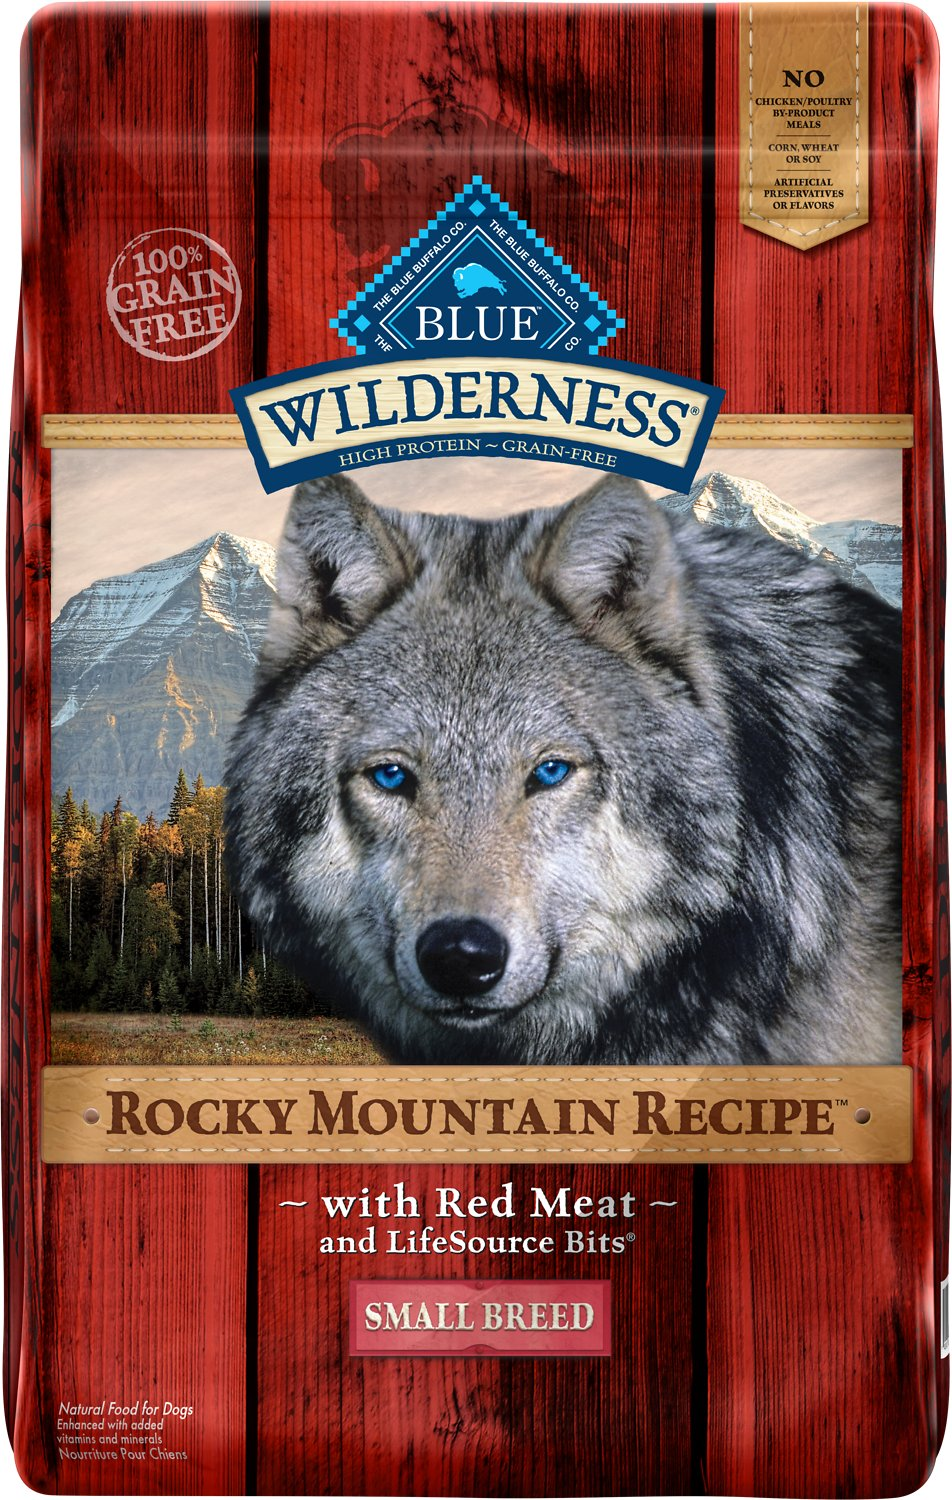 Blue Buffalo Wilderness Rocky Mountain Recipe with Red Meat Small Breed Grain-Free Dry Dog Food Image